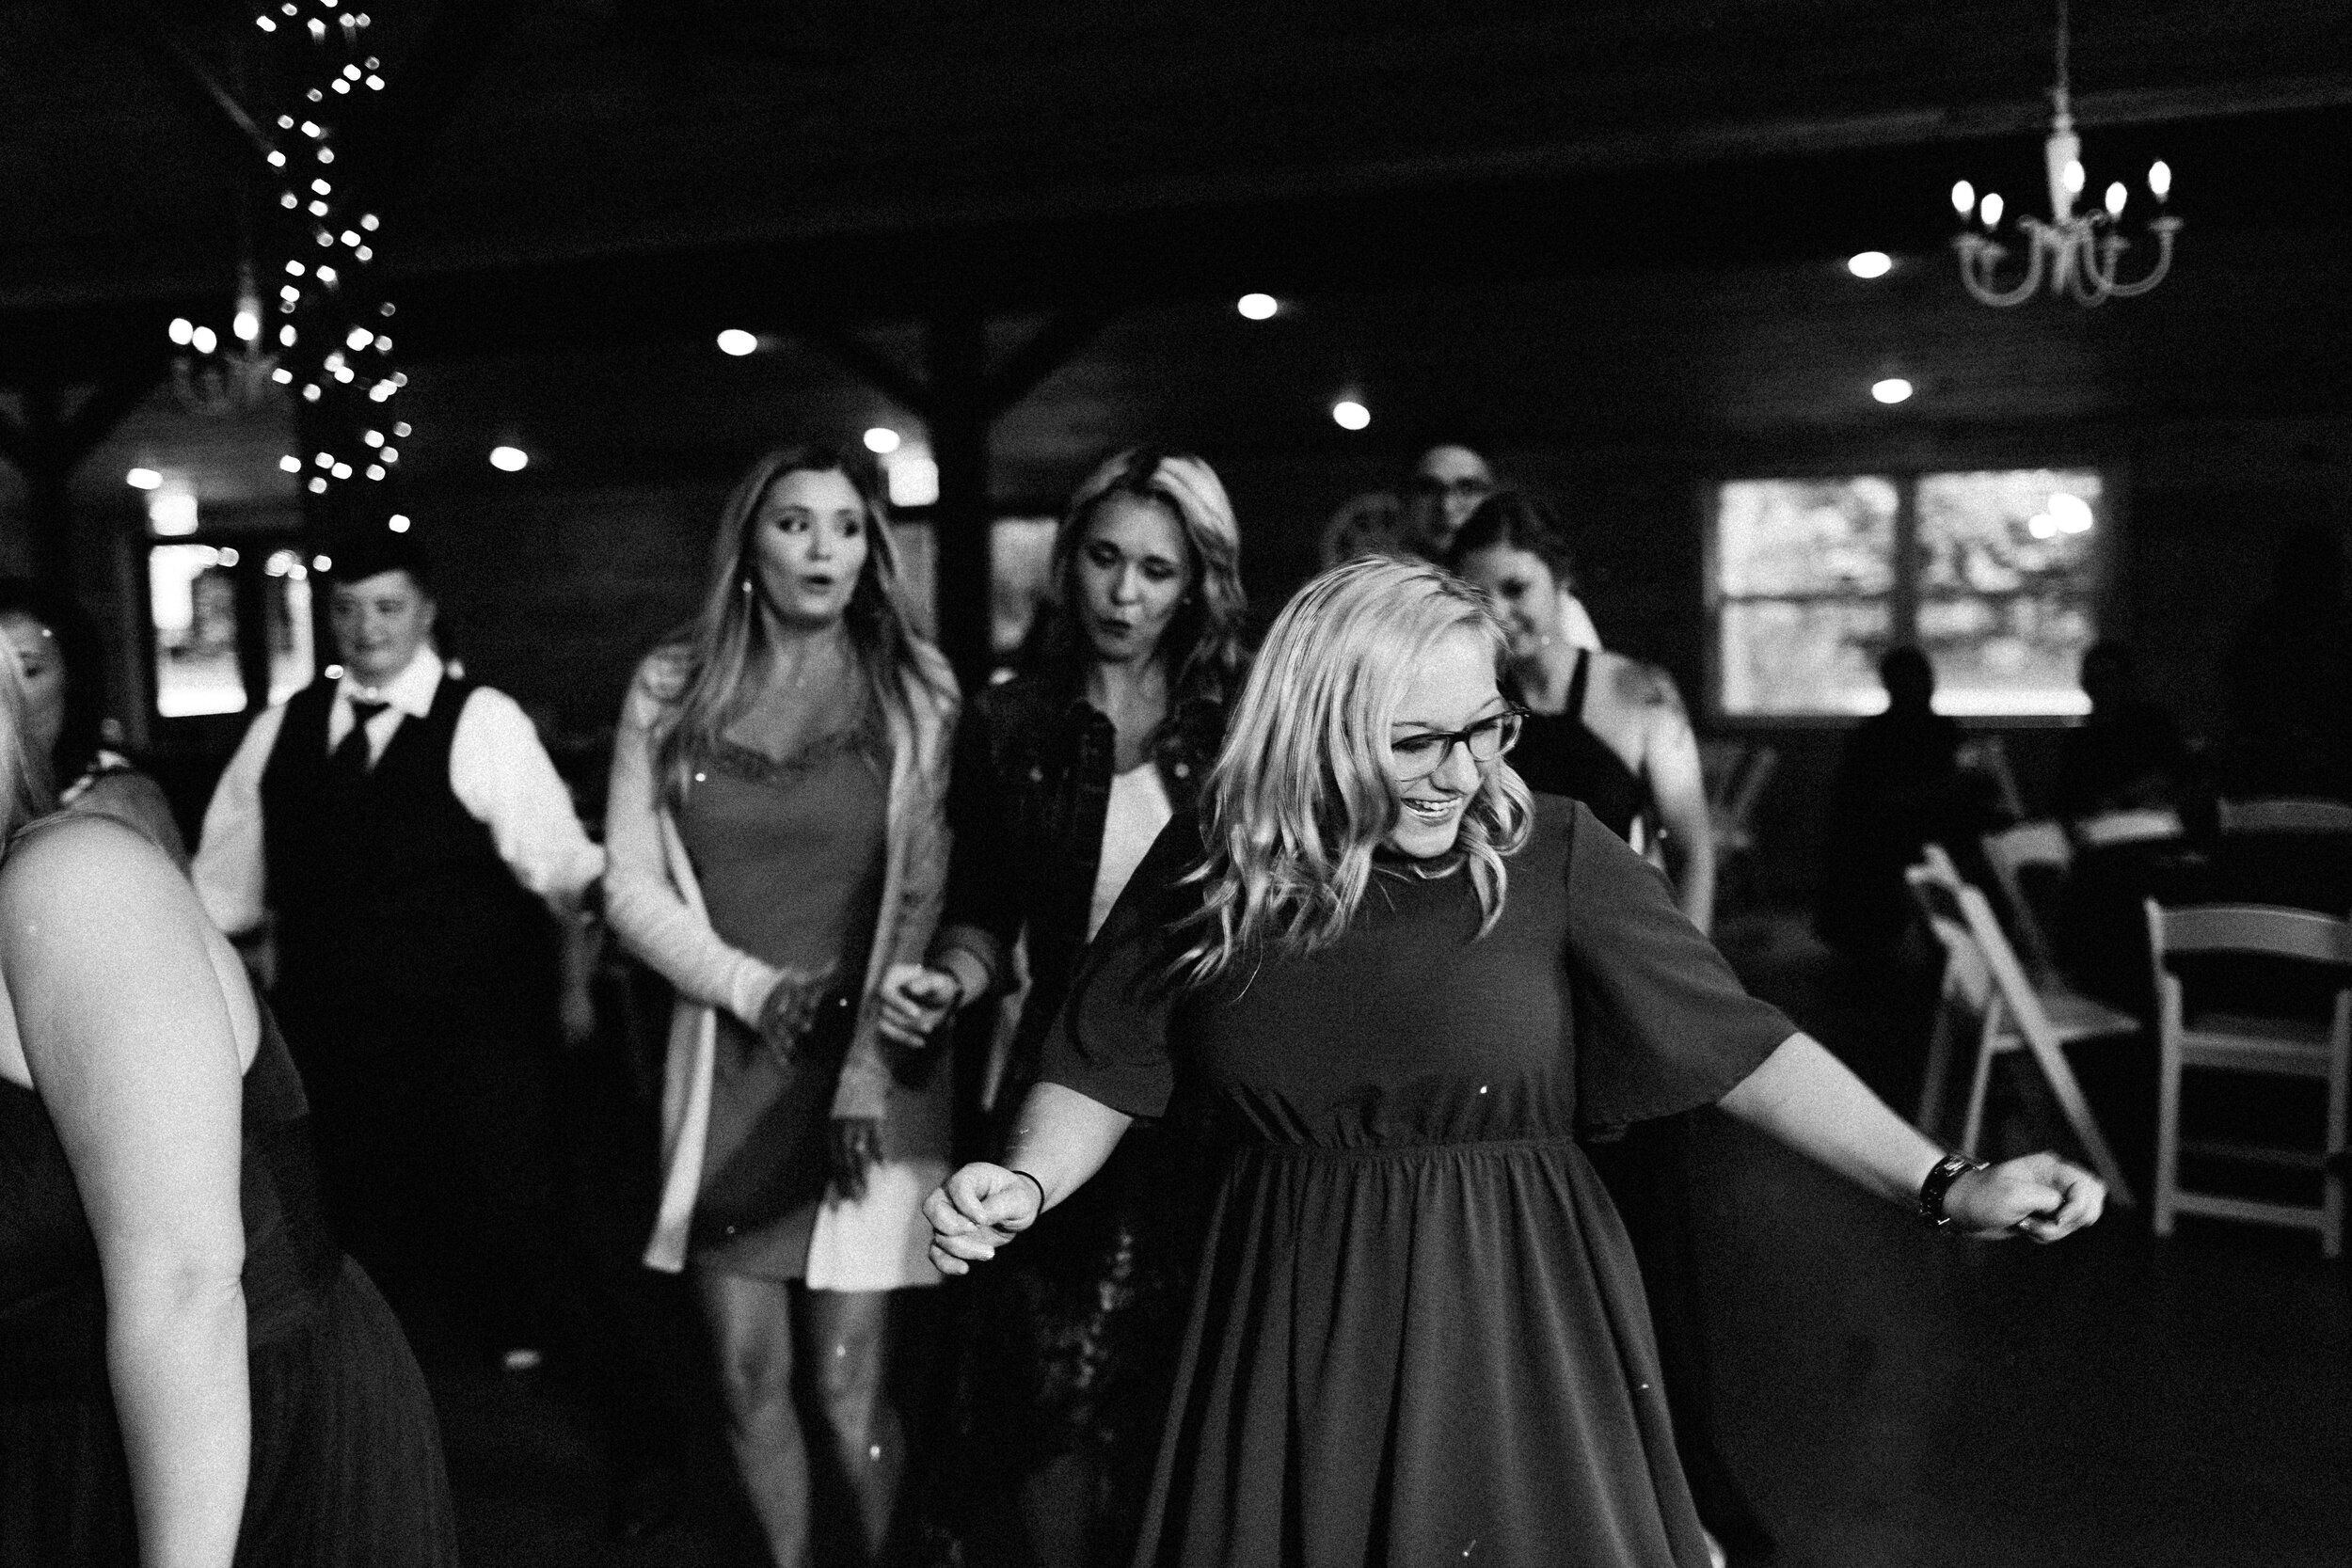 atlanta_wedding_photographers_georgia_same_sex_rustic_barn_farm_lesbian_weddings_inclusive_3164.jpg